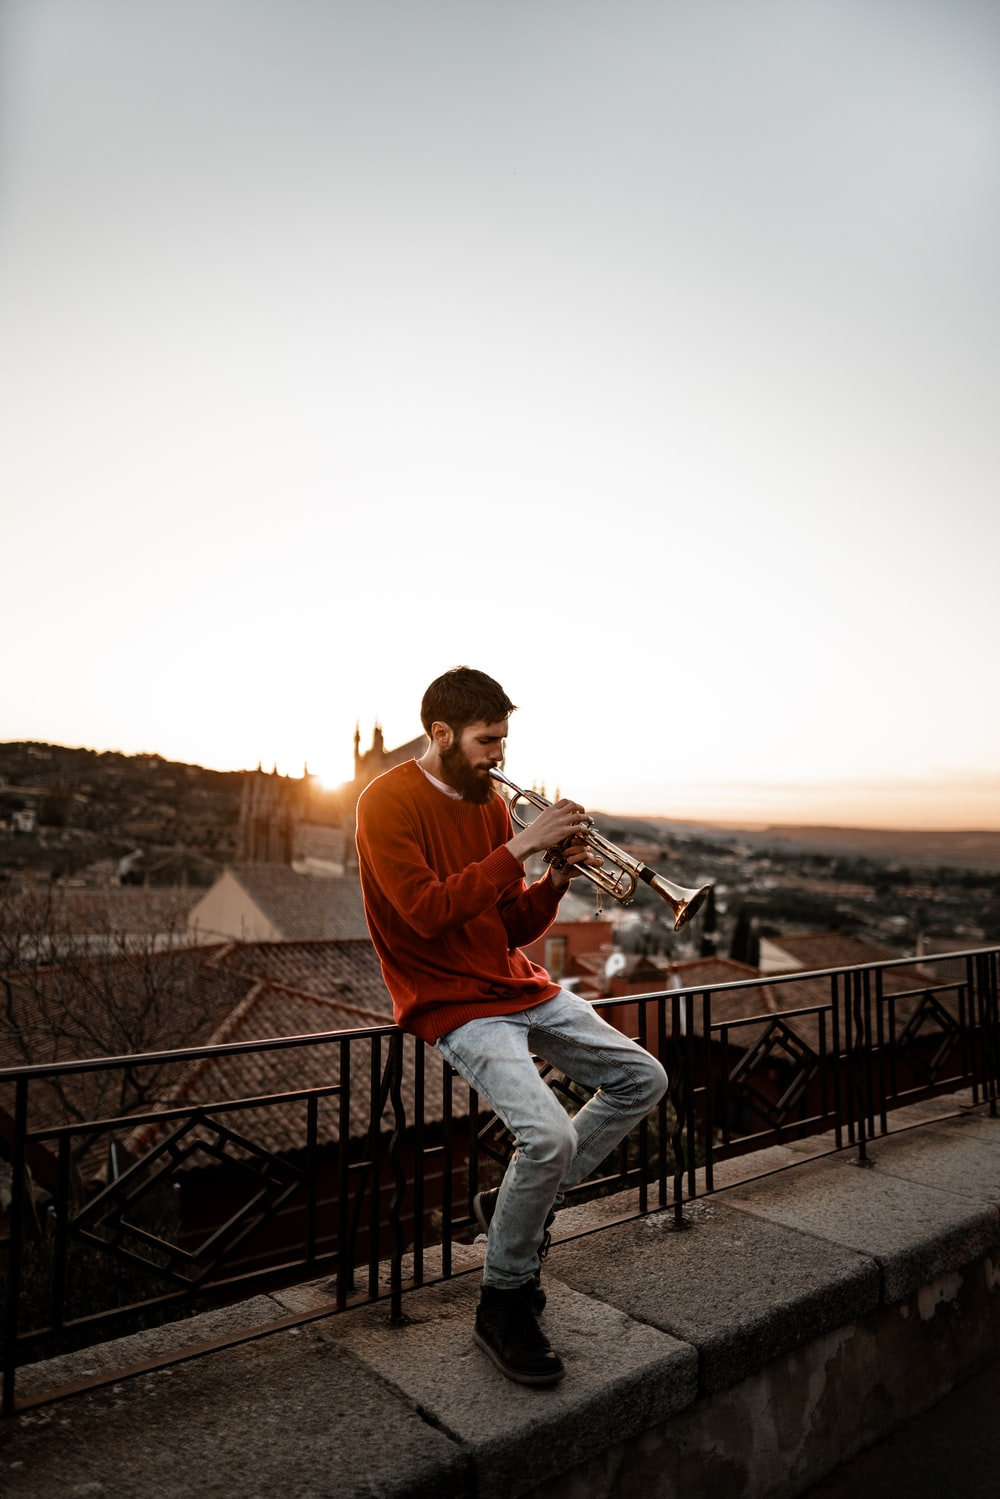 man sitting on railing while playing wind instrument outdoors during daytime